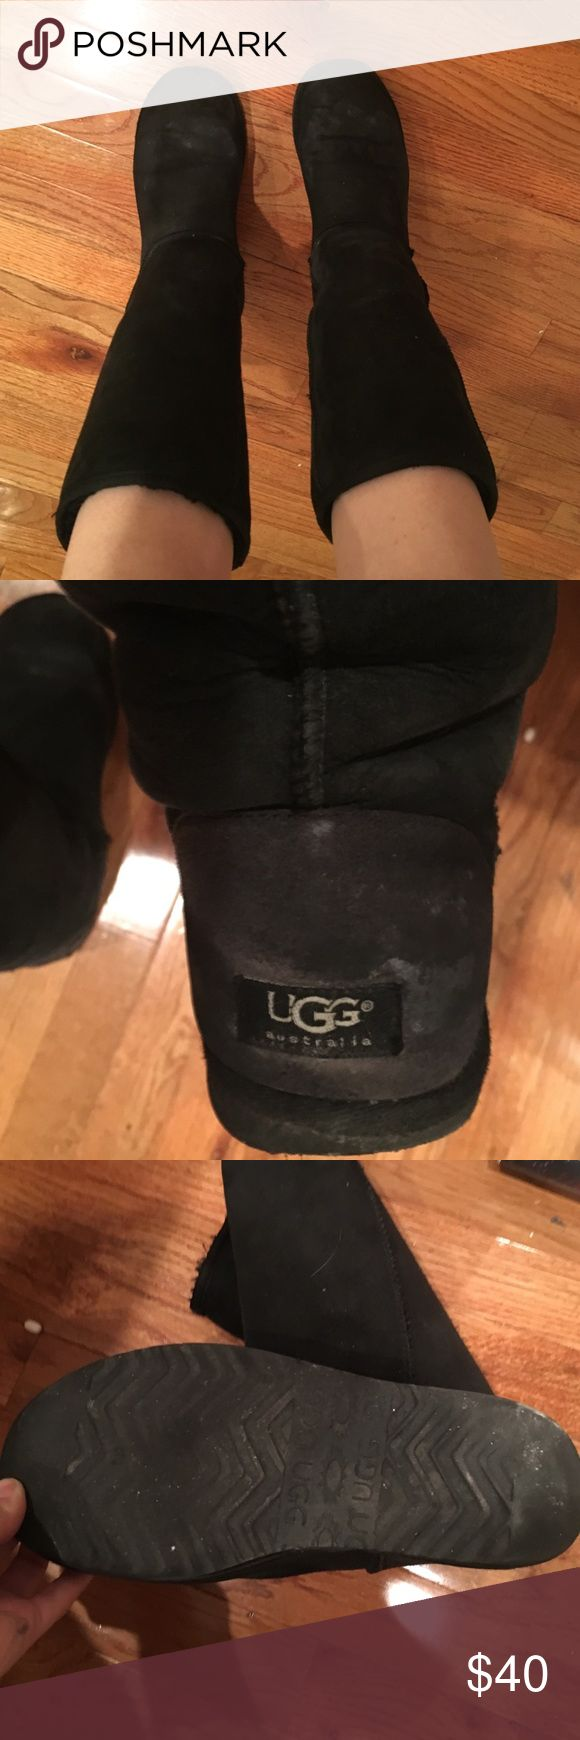 Black tall ugg boots Sz 9 These are a pair of used black uggs, they do have some water marks and scuffs. I almost never wear these anymore as I live in NYC and the winters are very wet. I also have a pair of size 9 chestnut tall uggs as well. Those are in better condition but have a sharpie mark on the side. Willing to add more photos or combo or sell separate! UGG Shoes Winter & Rain Boots